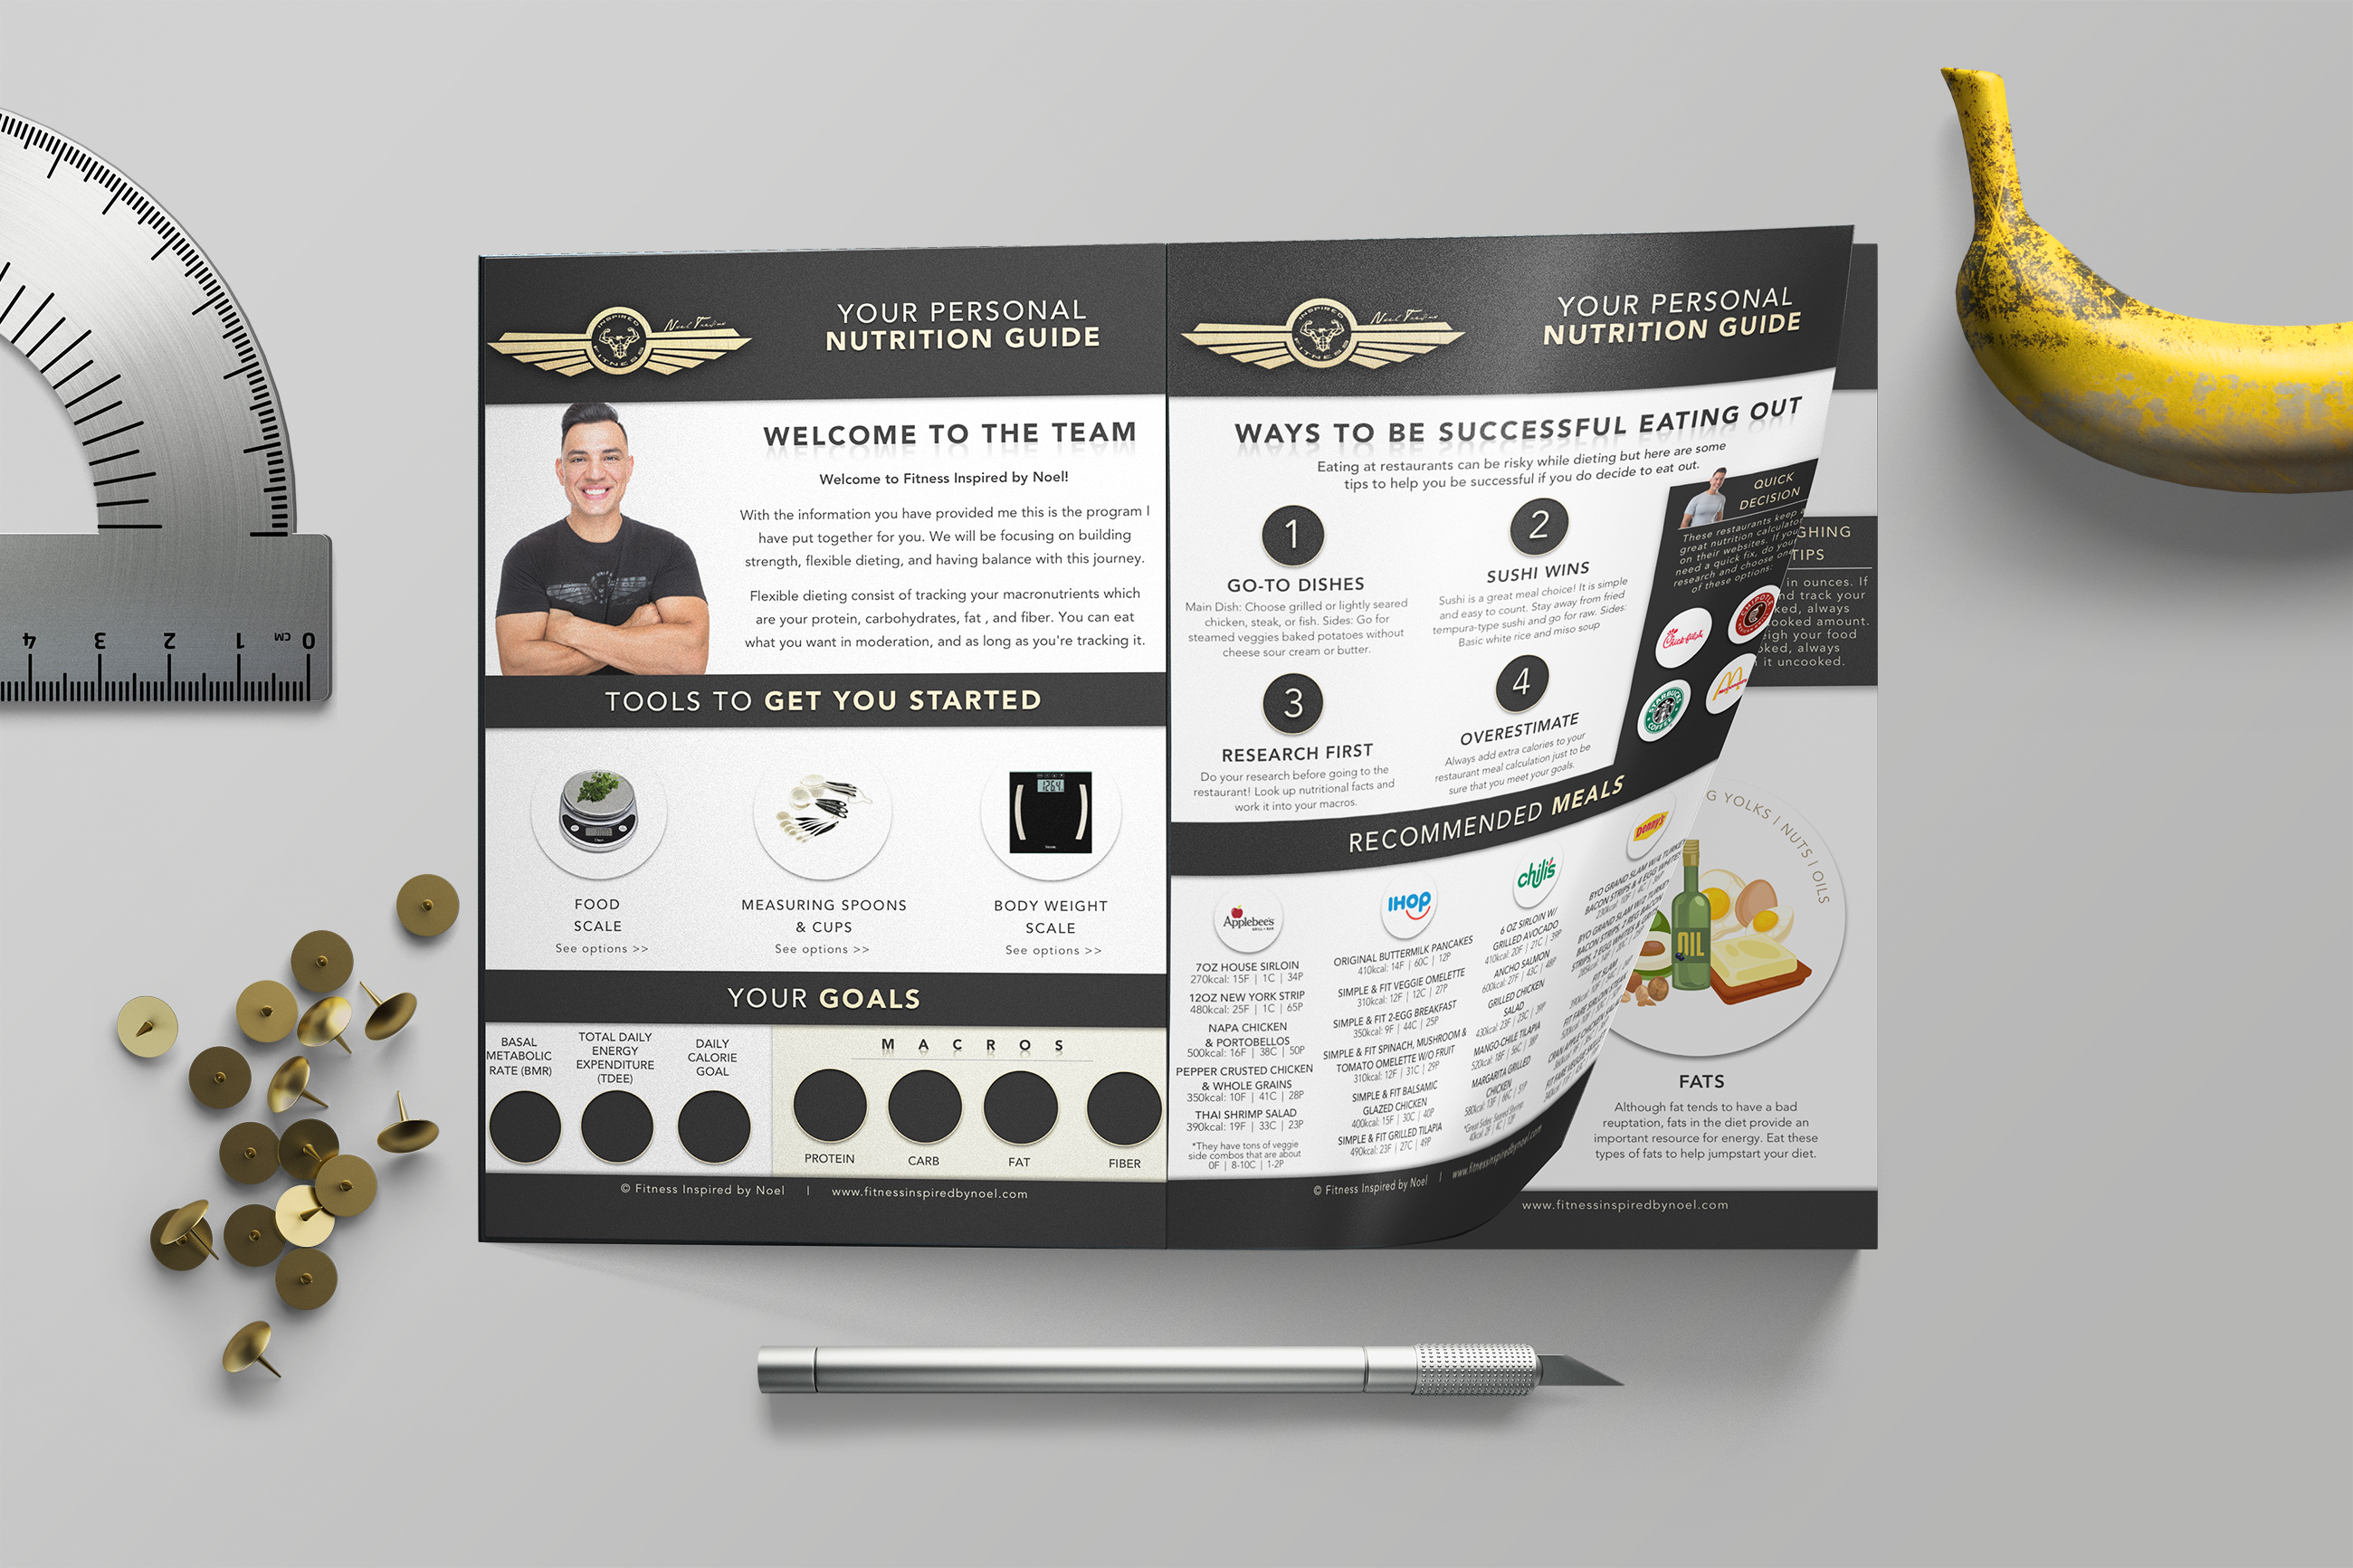 Graphic Design Image of a Brochure Design